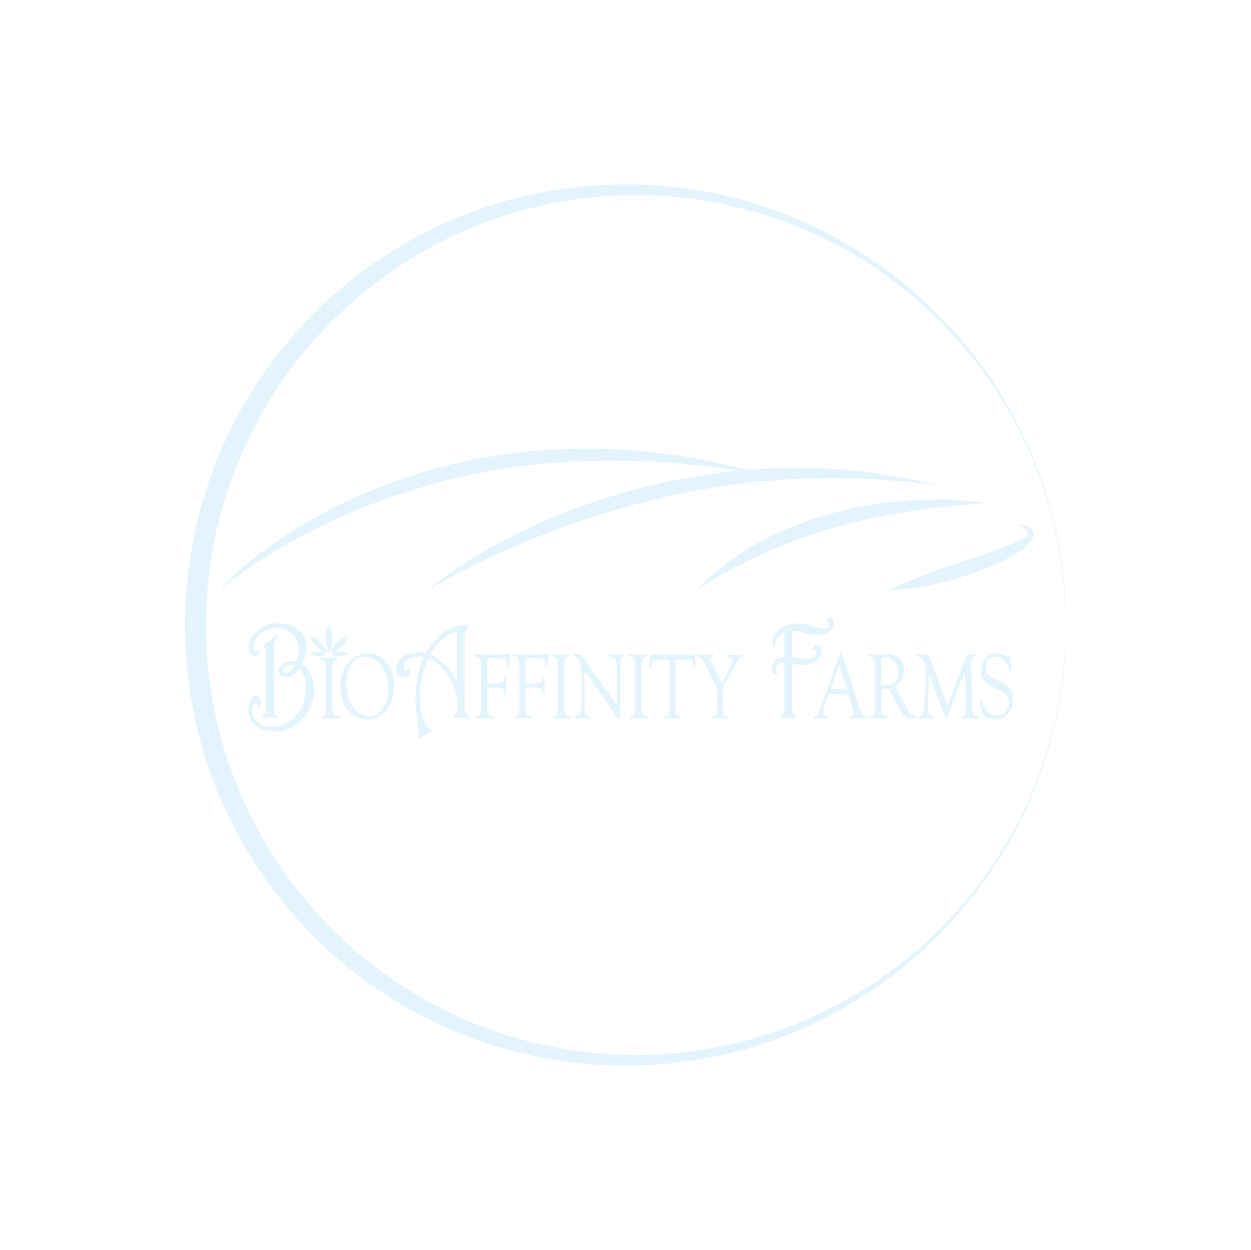 BioAffinity Farms